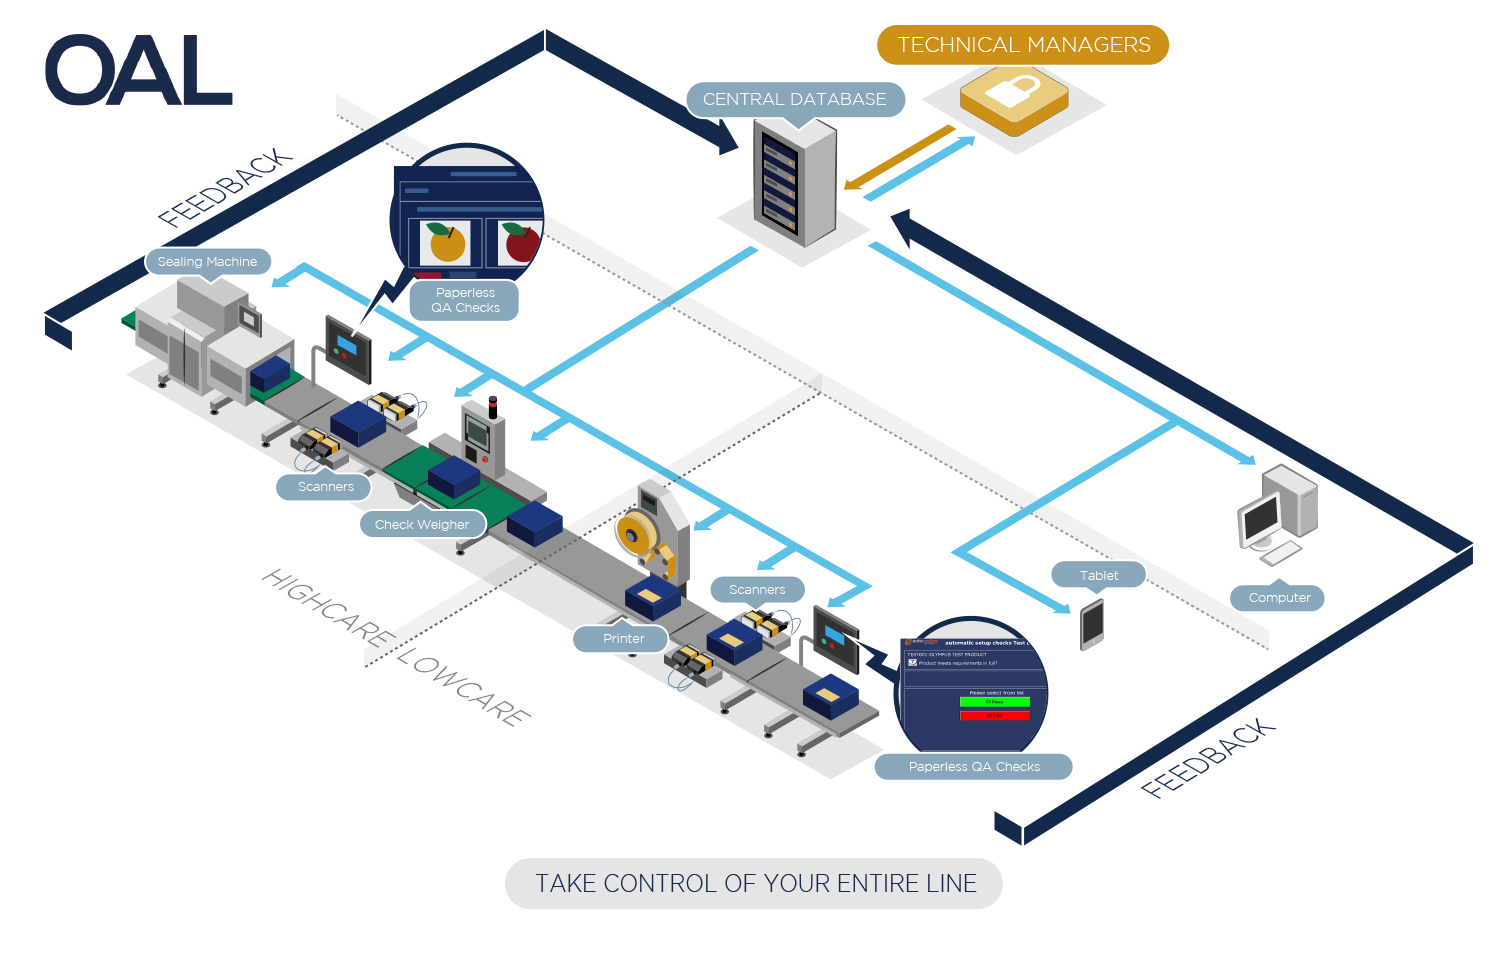 The OAL system controls your line devices ensuring correct set-up of printers and date coders from a master database of your products.